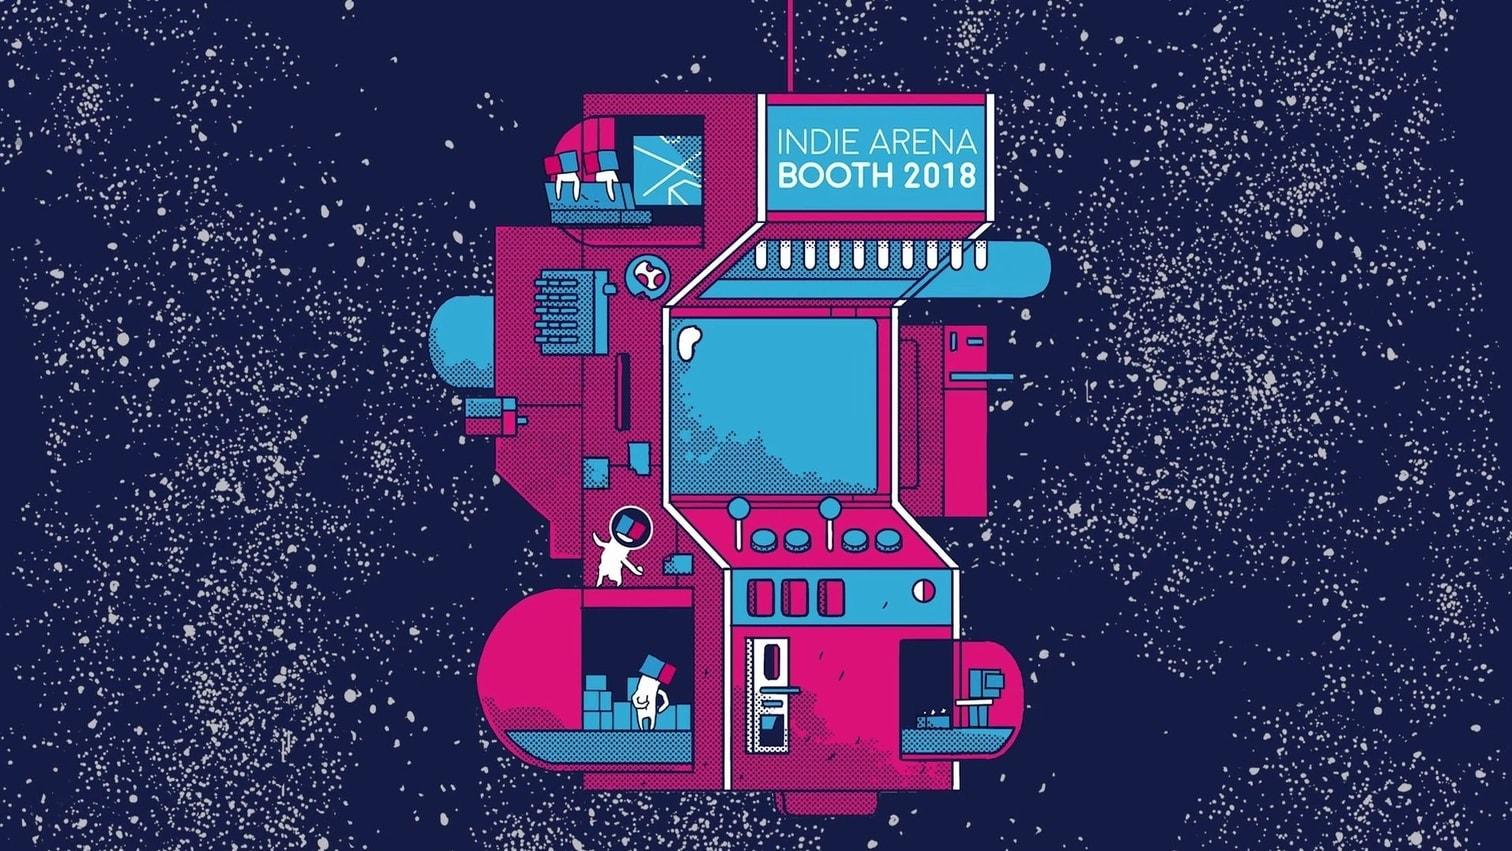 Foto: Indie Arena Booth